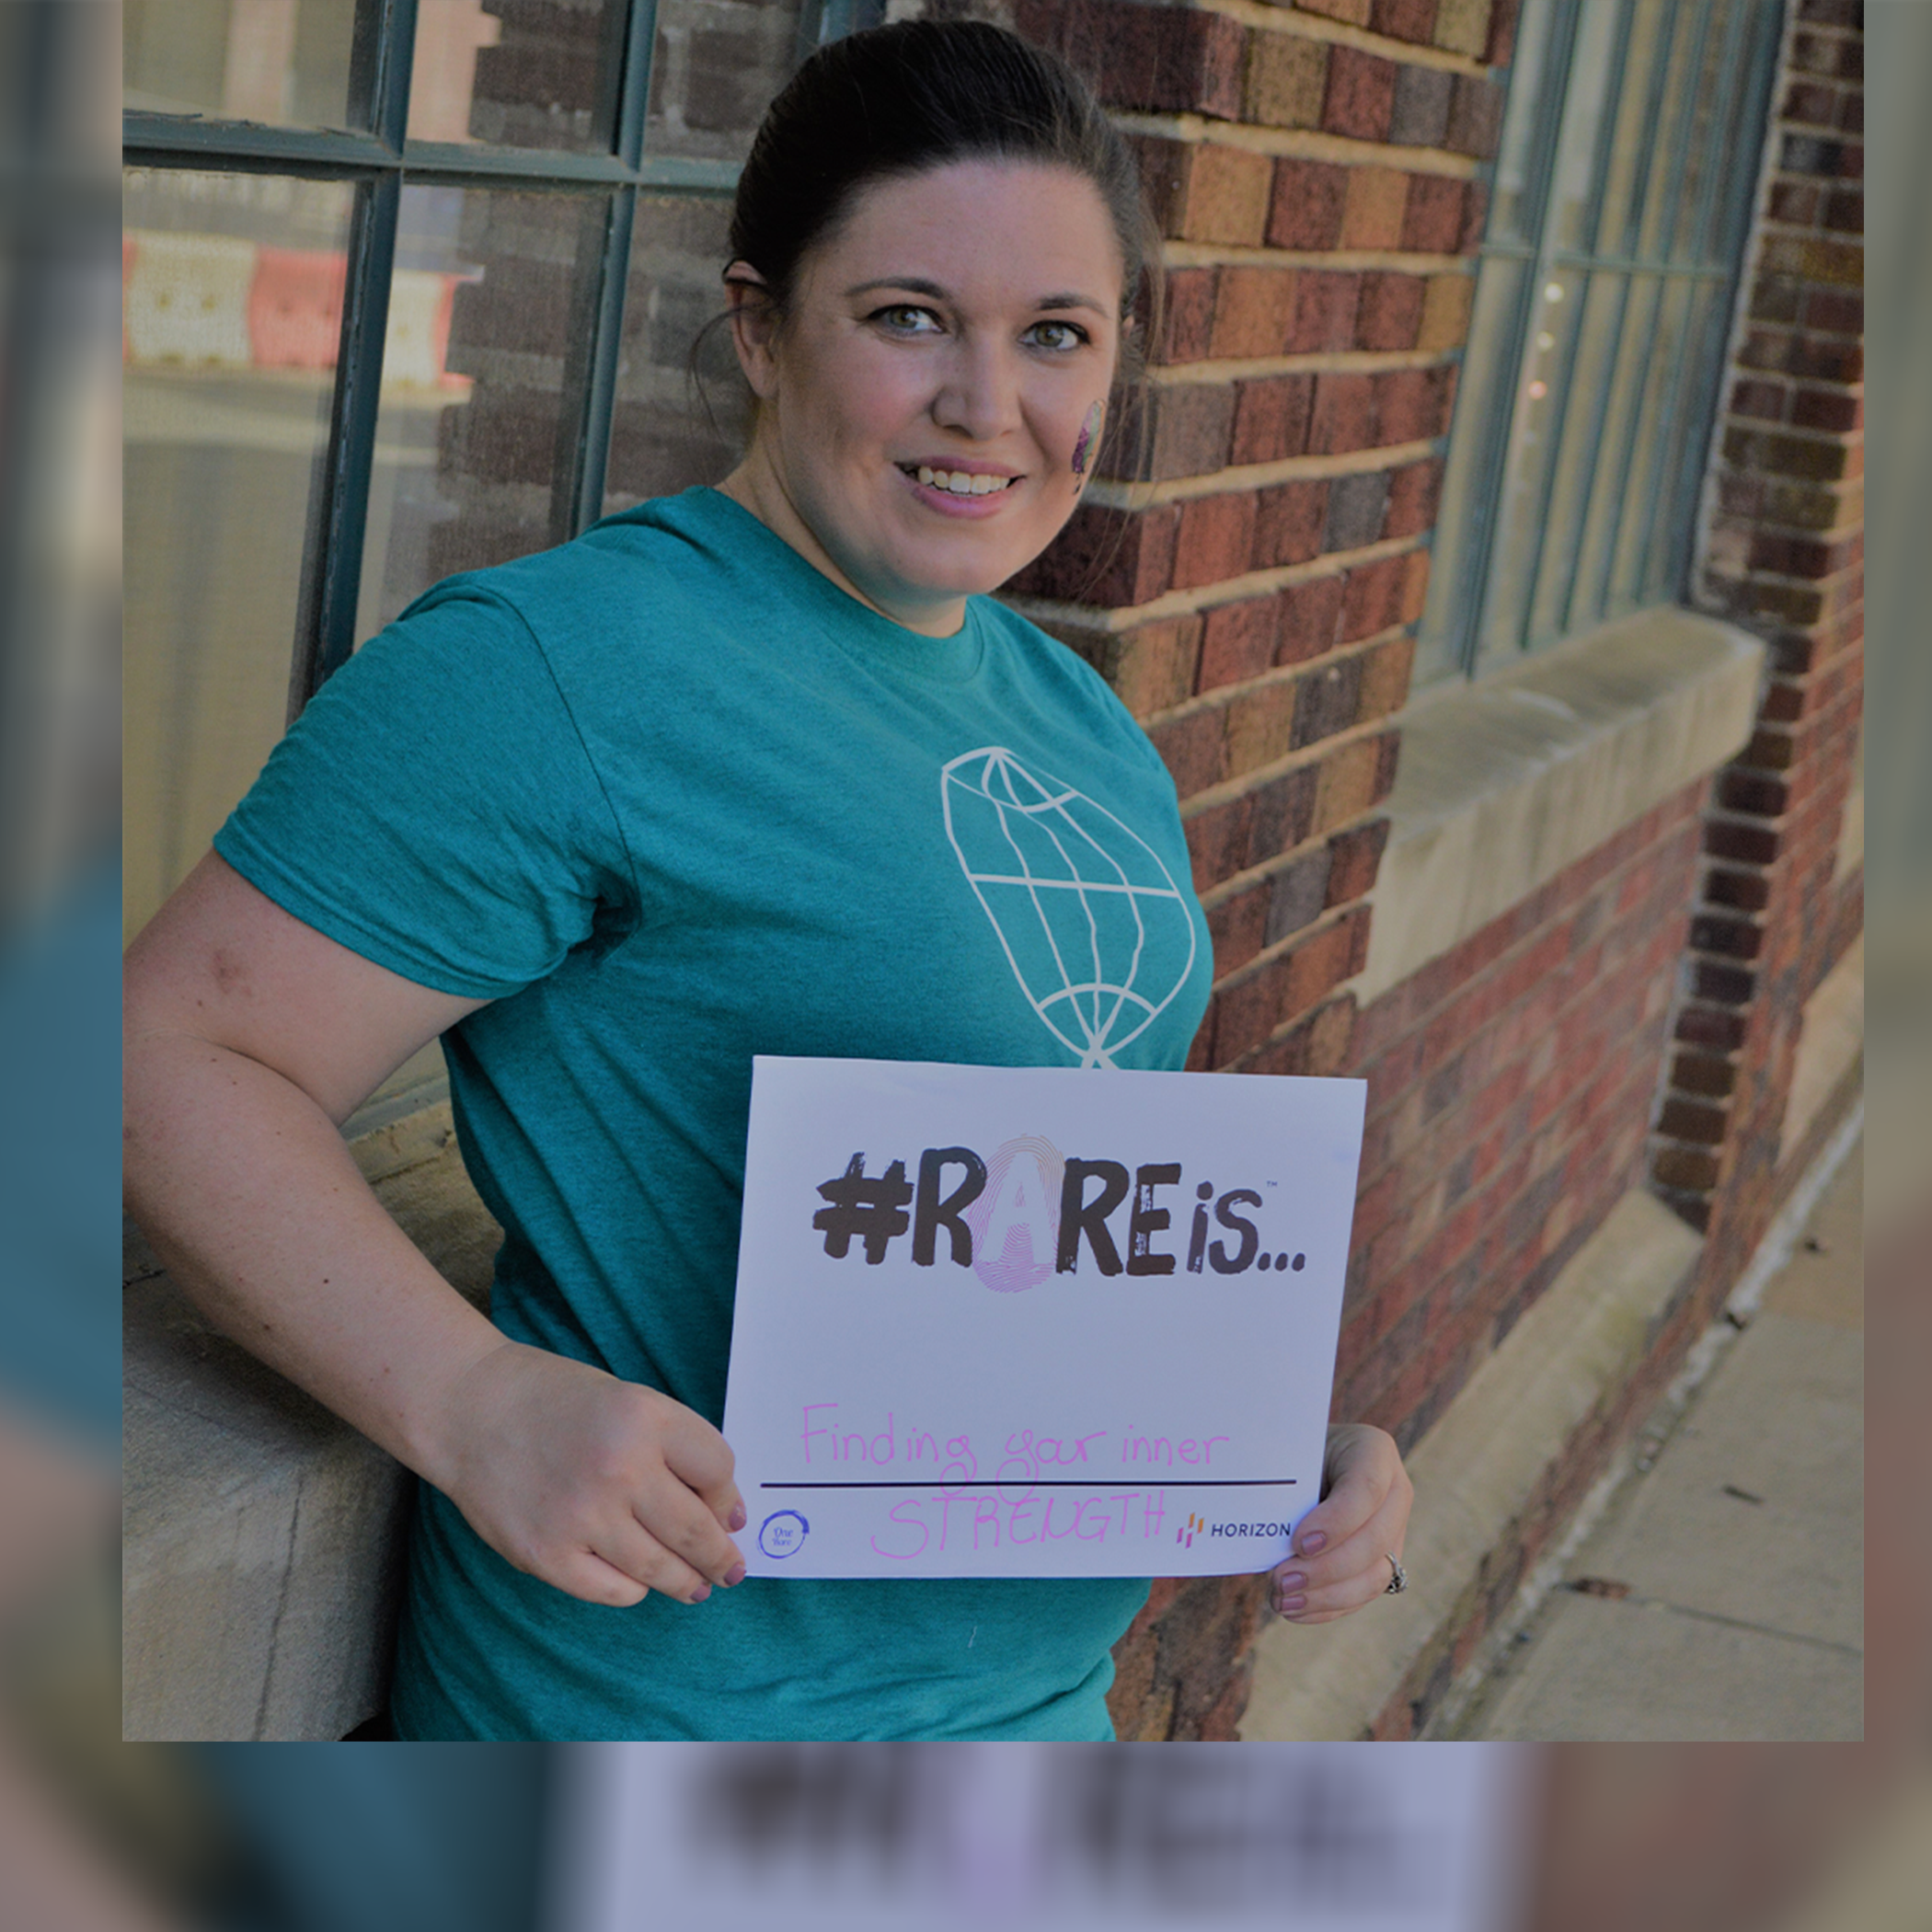 Lindsey Kizer smiles facing the camera shares how joining an advocacy organization impacted her after her diagnosis with a rare disease called narcolepsy